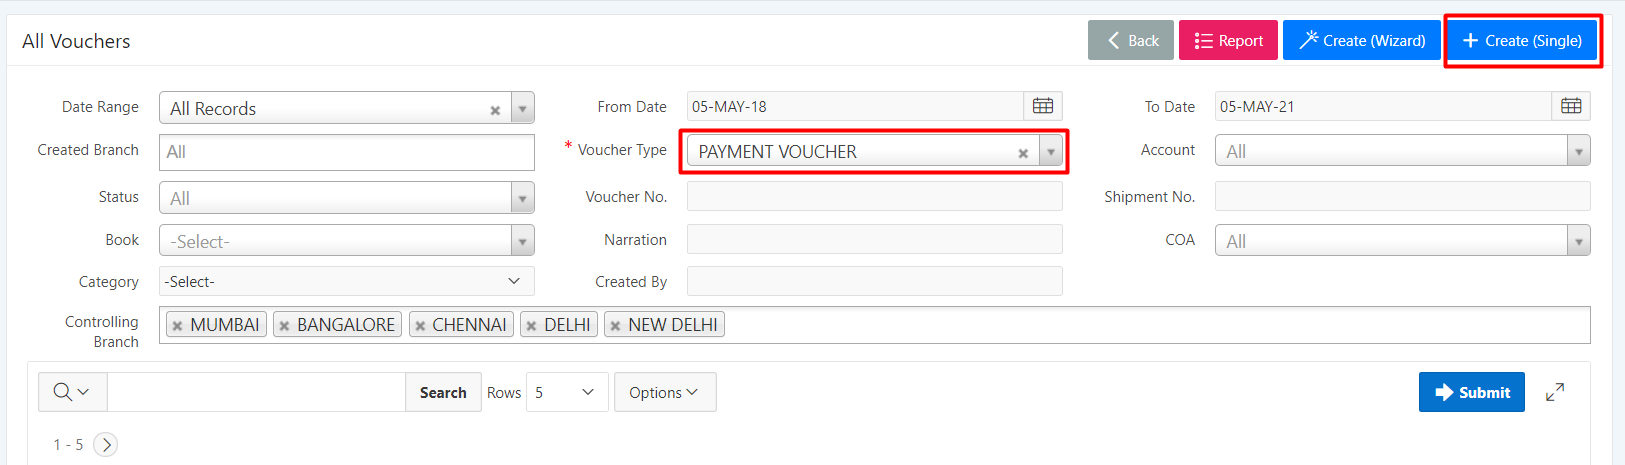 payment voucher entry